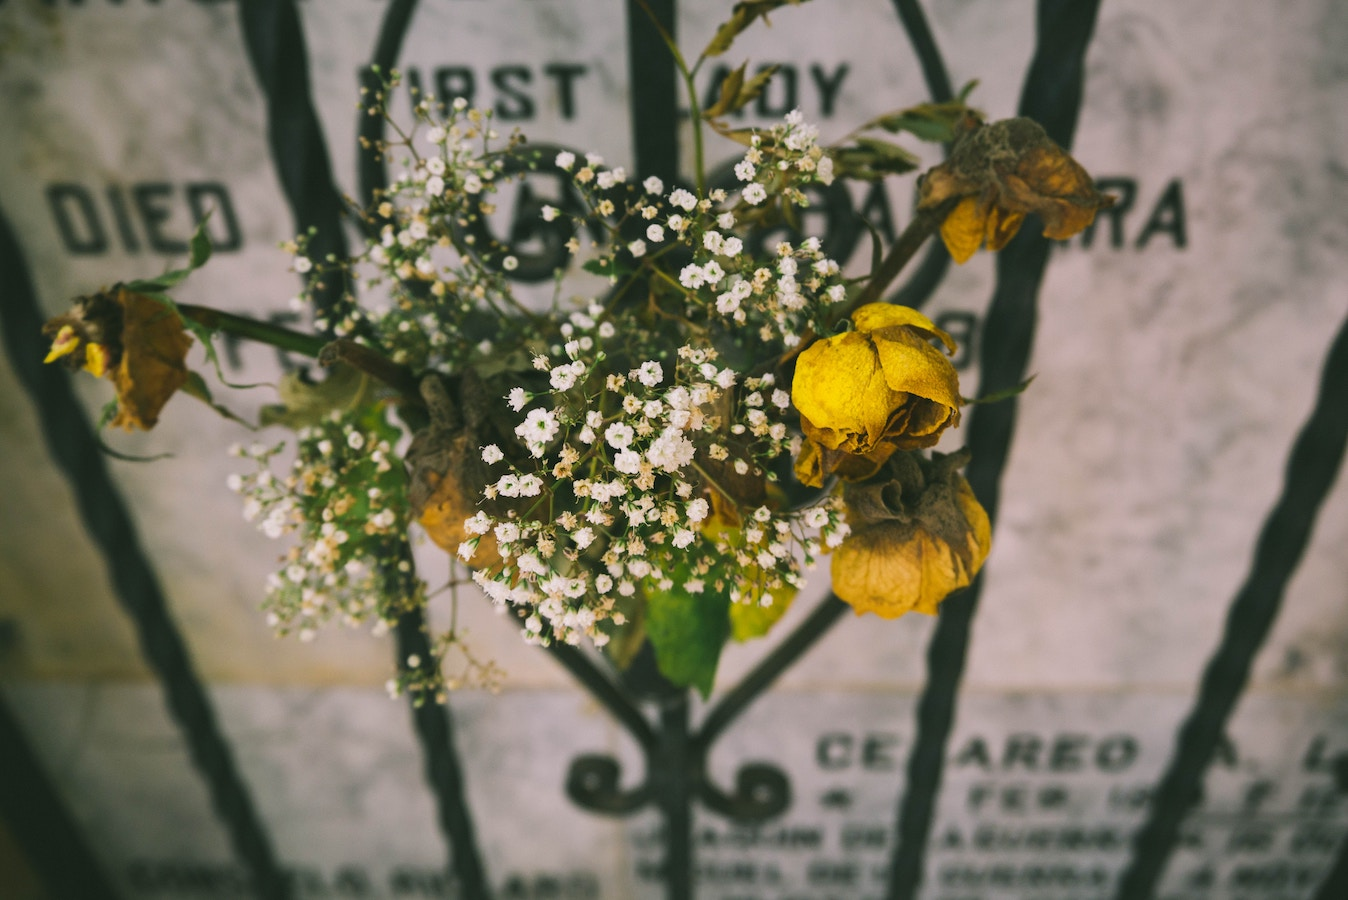 Funeral Flowers in front of Gated Headstone - Funeral Loan choices